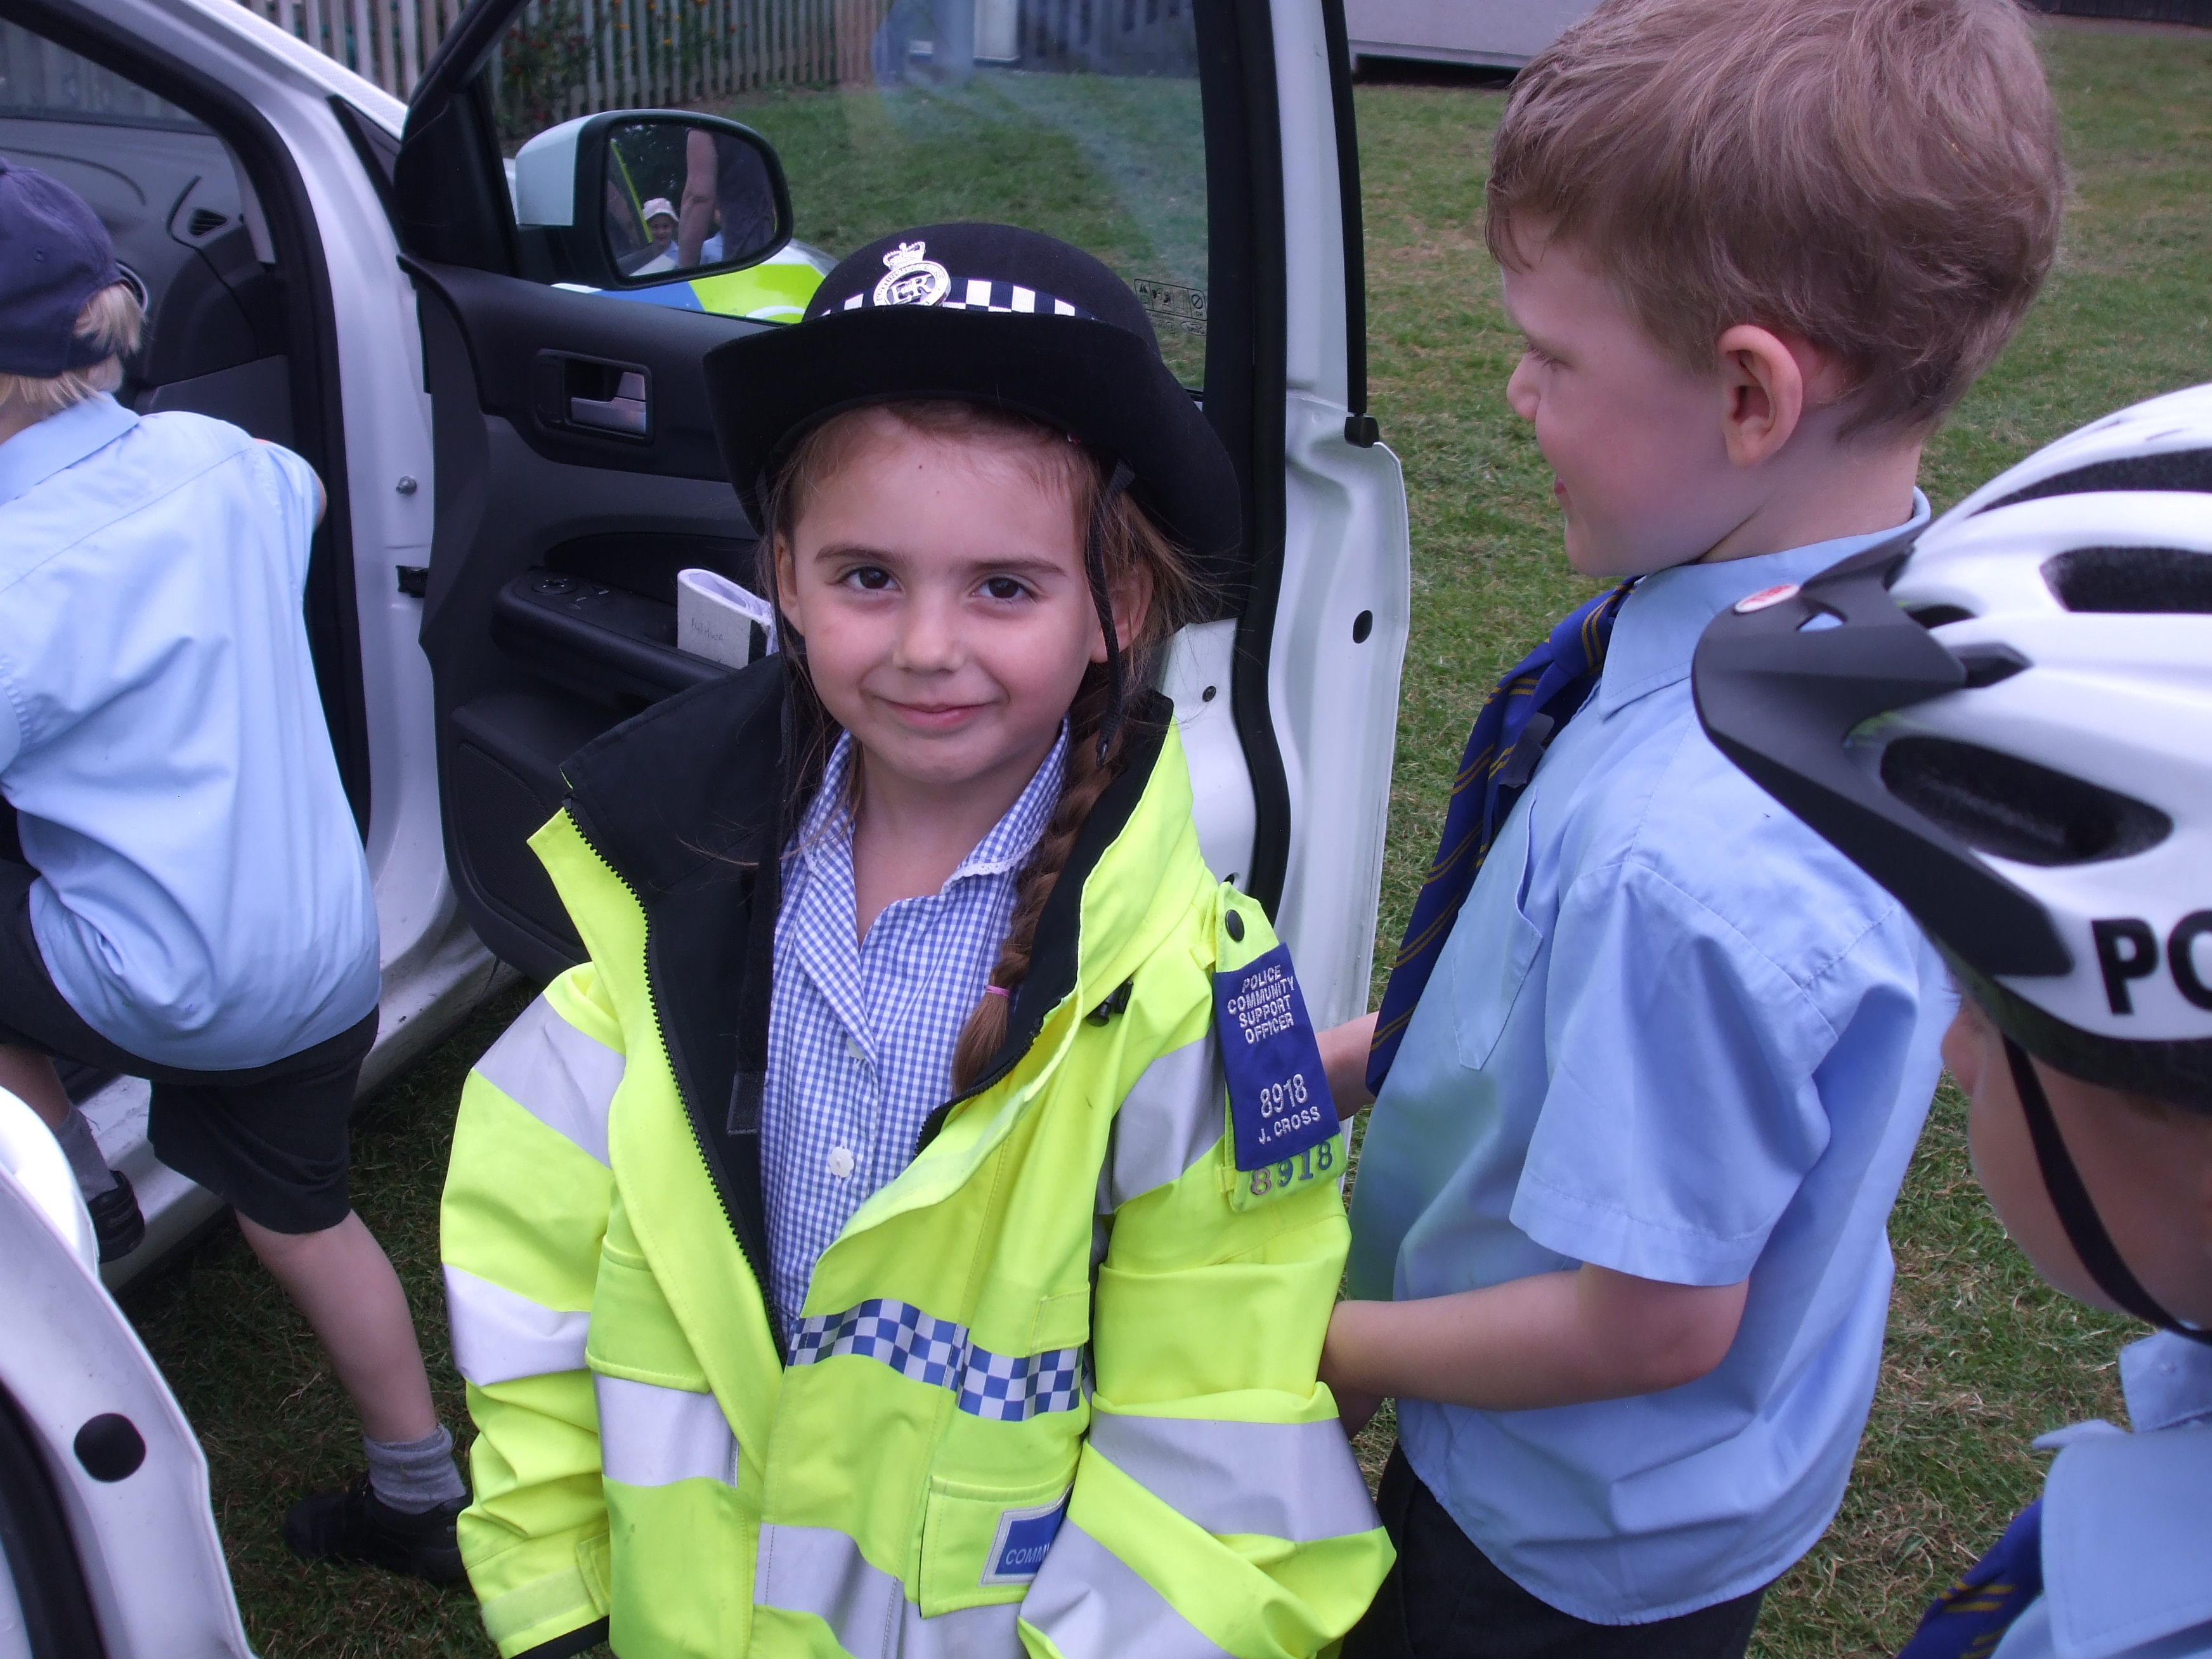 Reception class photos jubilee party and police car visit 017.jpg